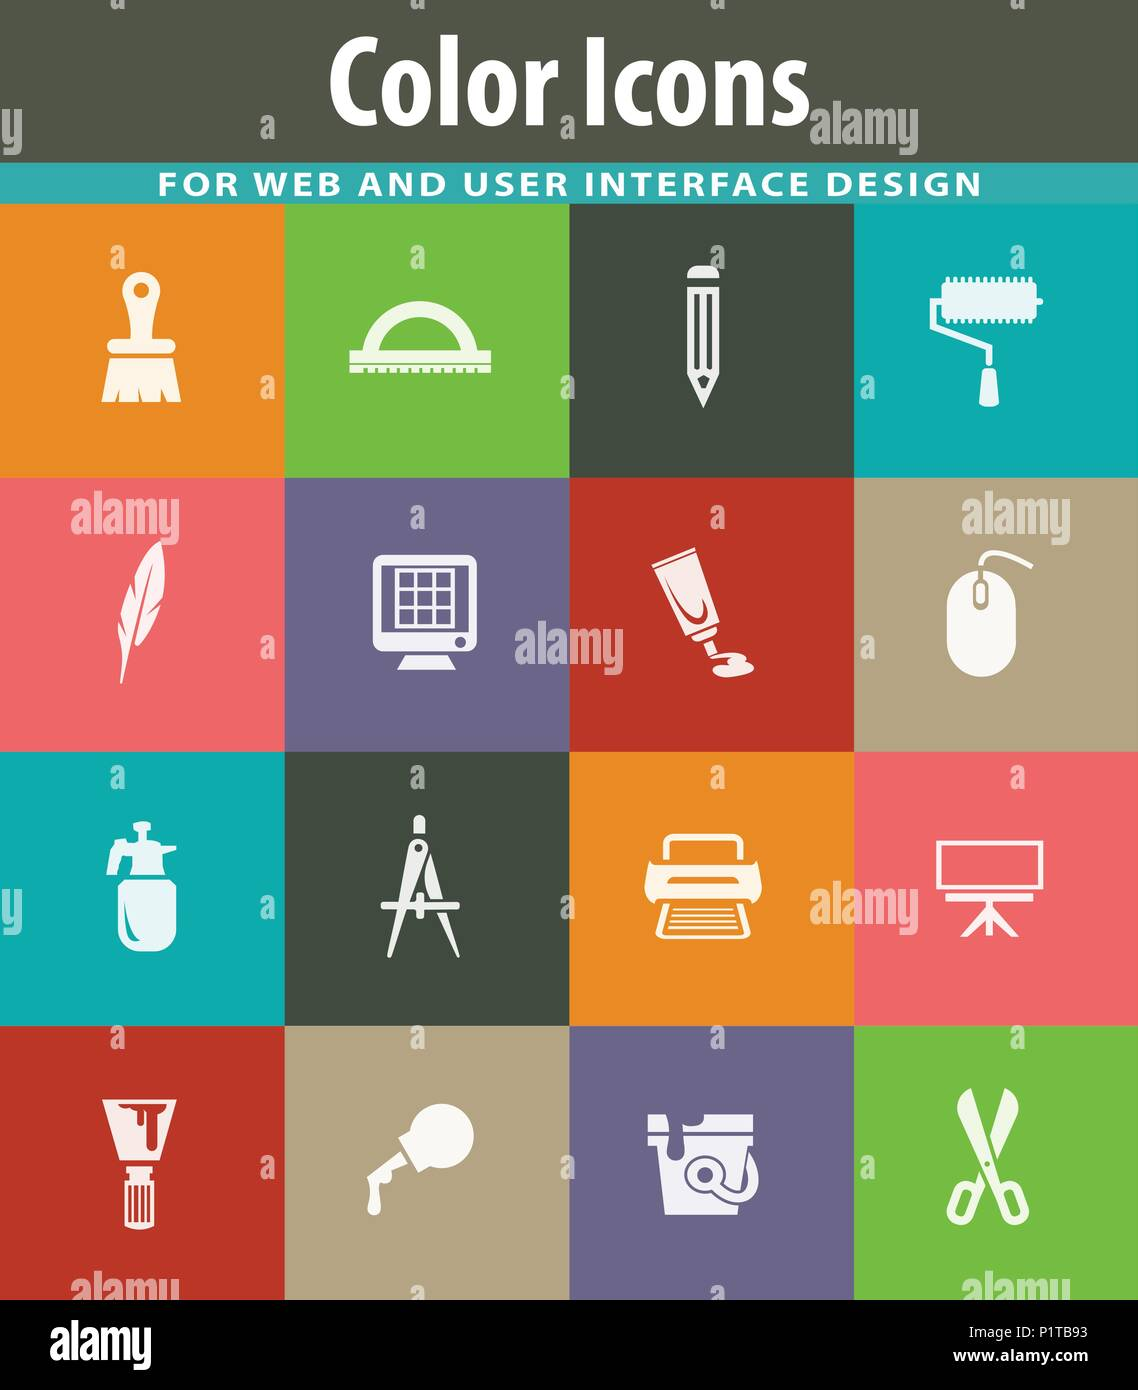 Art Tools Easy Flat Web Icons For User Interface Design Stock Vector Image Art Alamy